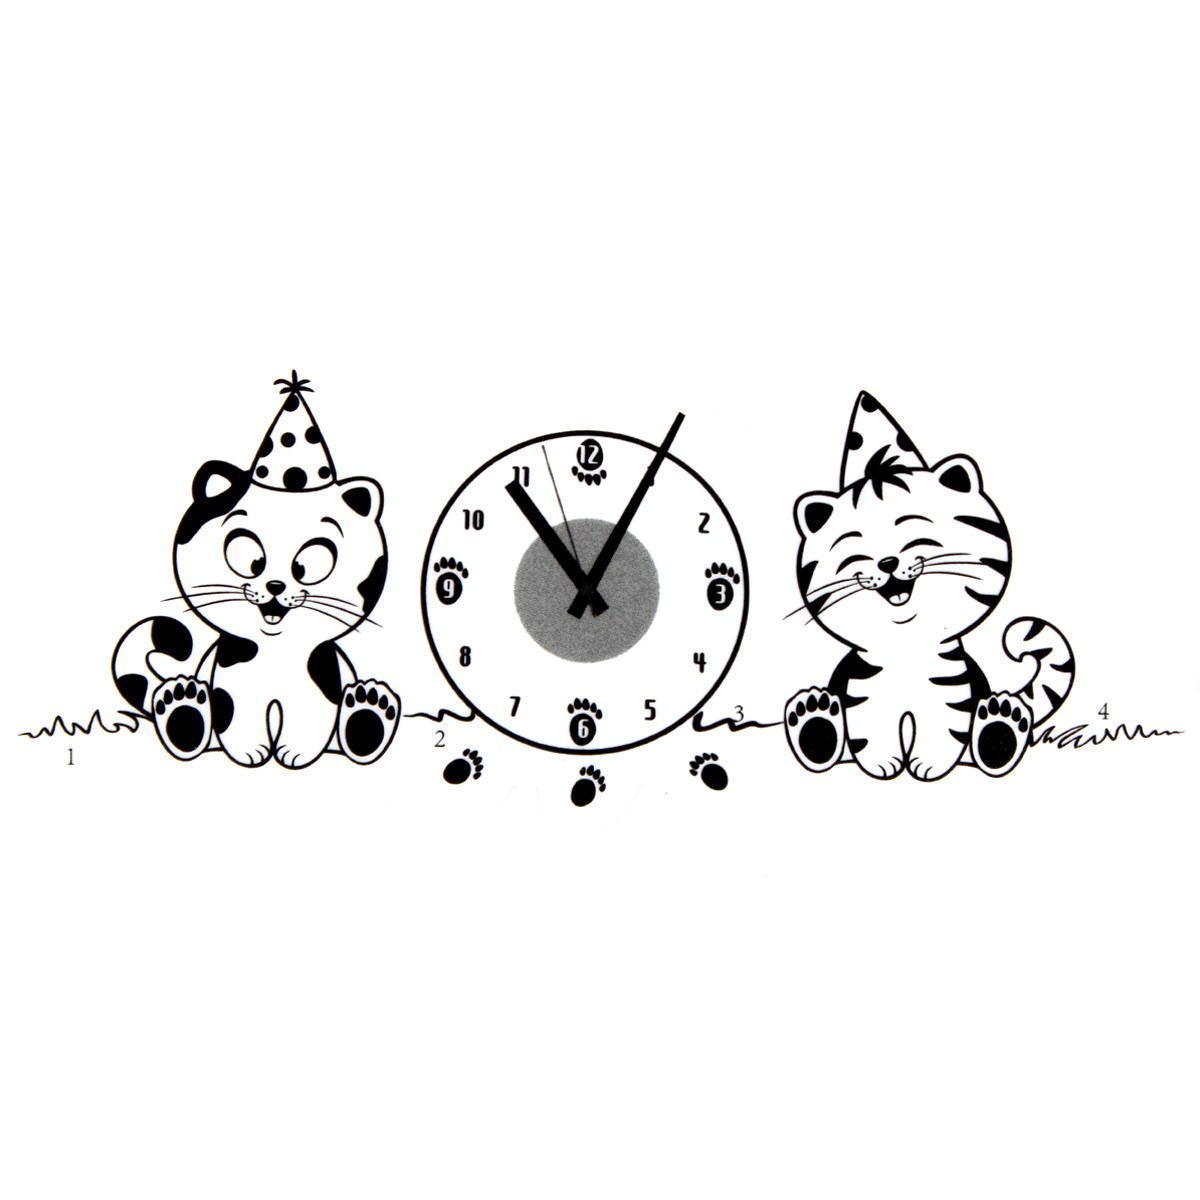 Cat Clock DIY Decorative Mirrors Stickers PVC Wall Happy Cats For Living Rooms Office Wallpaper Cute Decoration